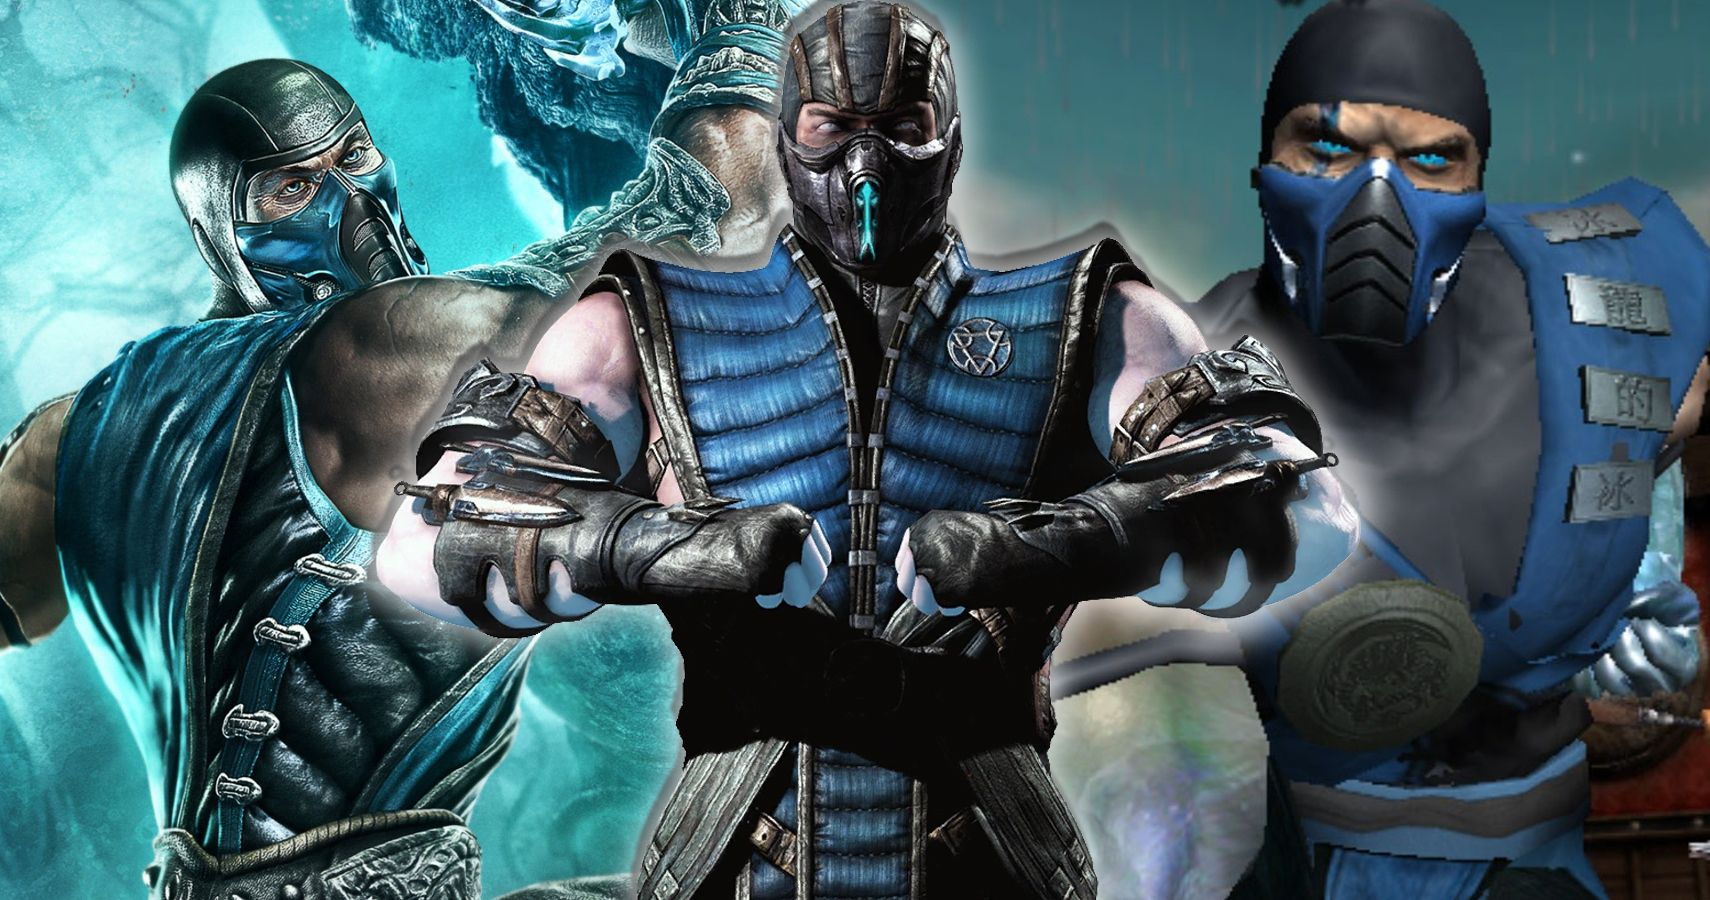 Mortal Kombat: 23 Weird Things About Sub-Zero's Anatomy Fans